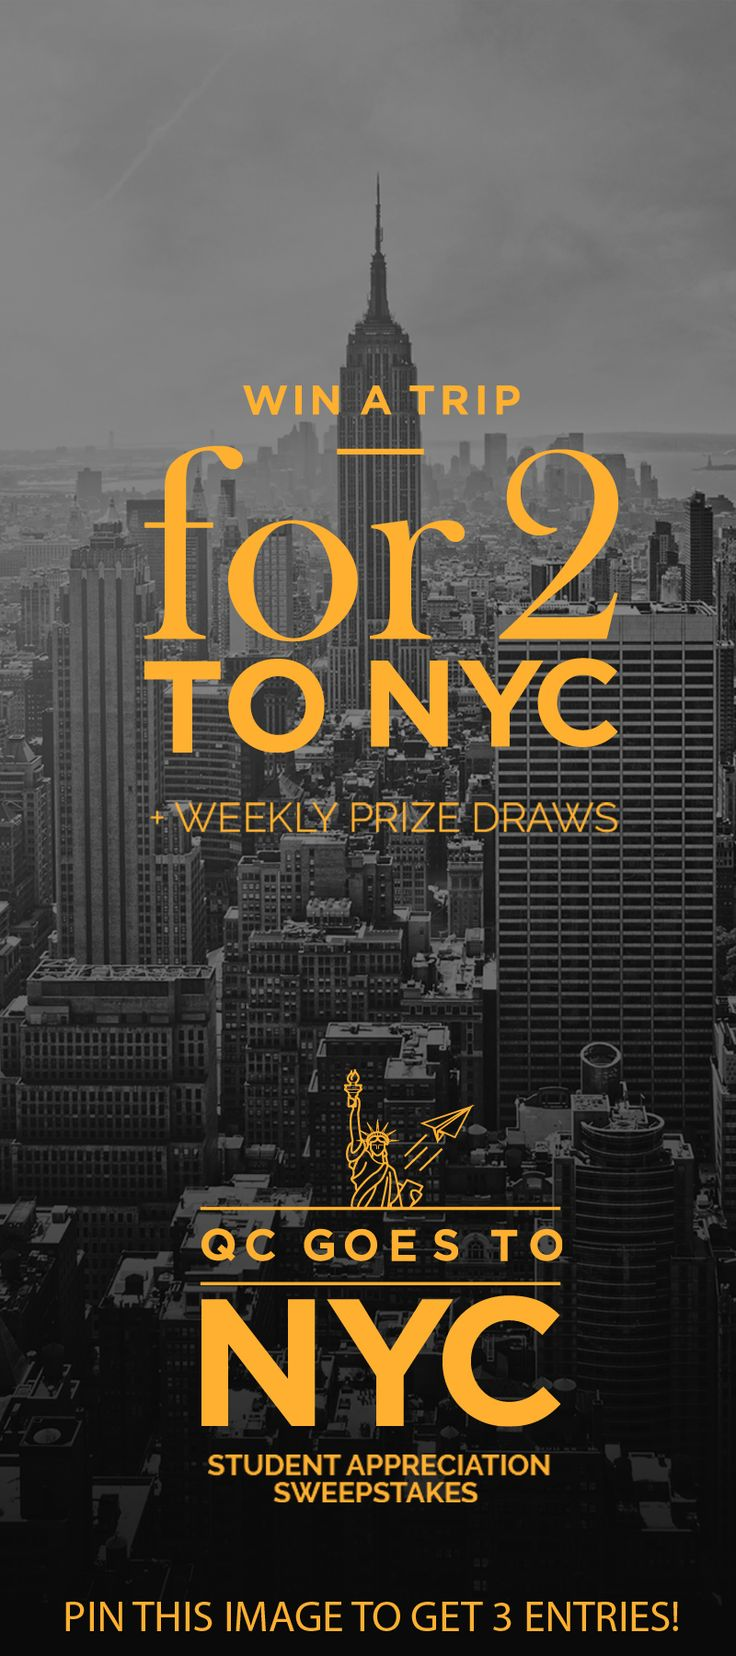 From now until February 28th, all students of QC Makeup Academy can enter the Sweepstakes for a chance to win a trip for two to New York City! Pin this image to your board to gain 3 entry points. Remember to follow our board for another 2 points!